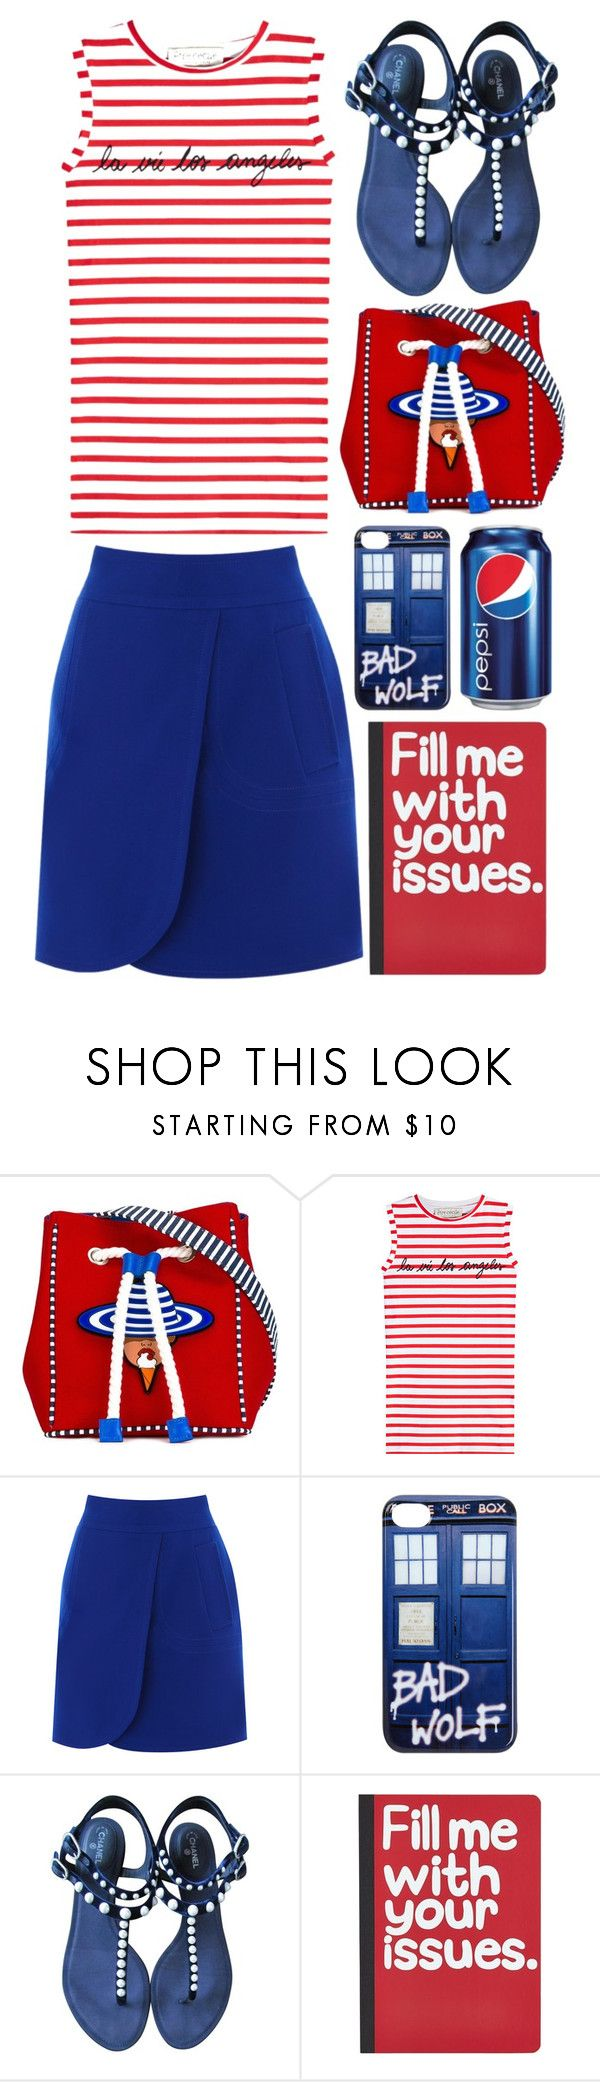 """Fill me with your issues"" by emcf3548 ❤ liked on Polyvore featuring Yazbukey, Être Cécile, Coast, Hot Topic, Chanel and Pier 1 Imports"